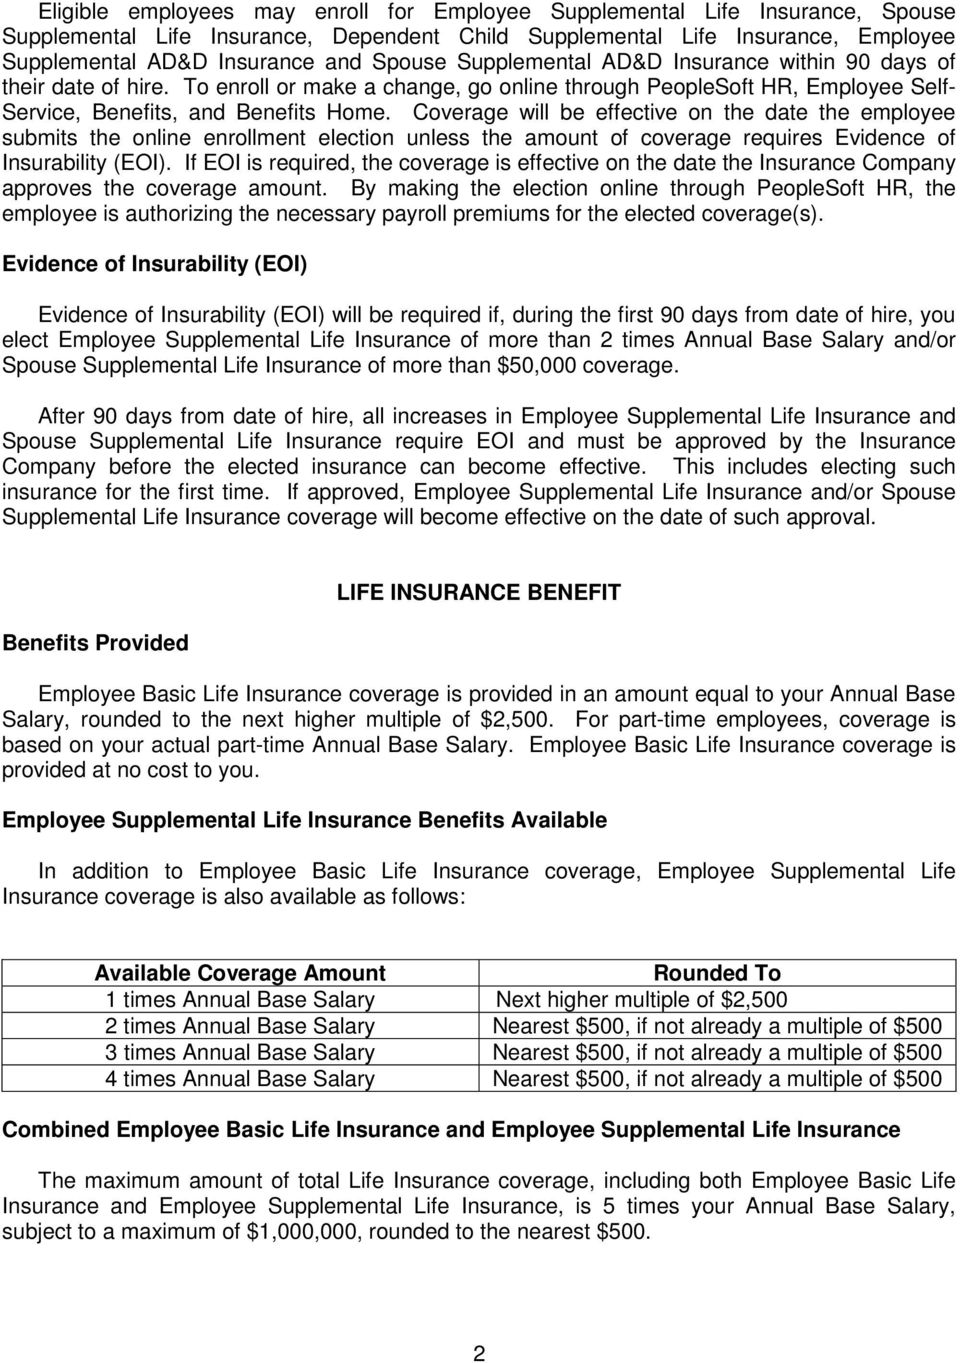 Coverage will be effective on the date the employee submits the online enrollment election unless the amount of coverage requires Evidence of Insurability (EOI).